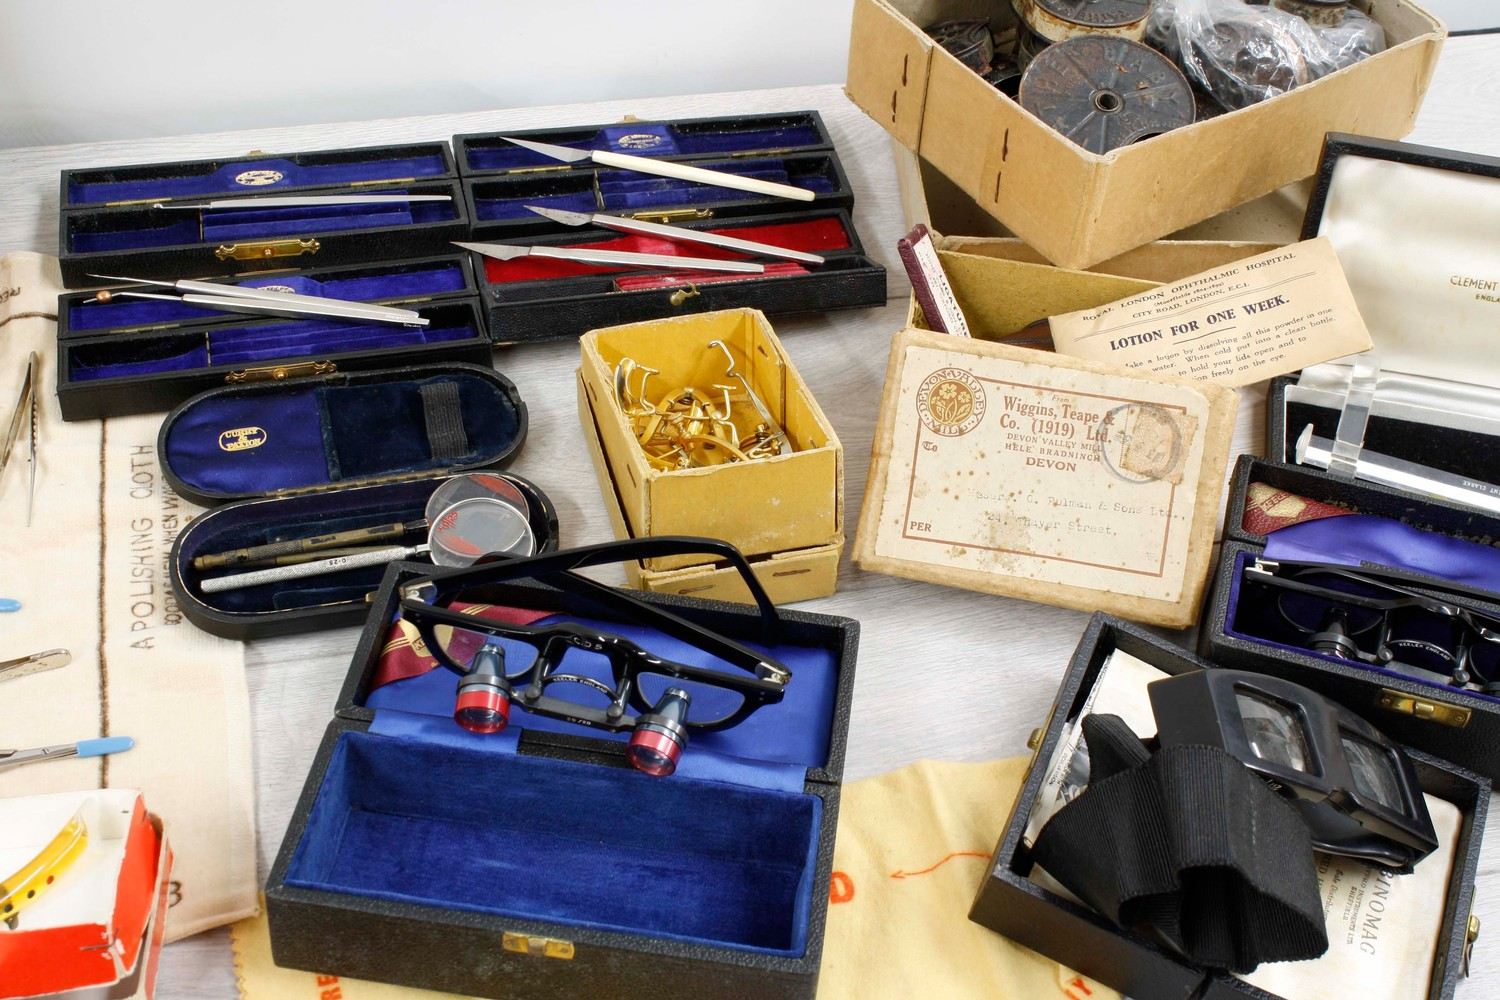 Collection of assorted opticians/medical instruments and apparatus including magnifying glasses, - Image 3 of 3